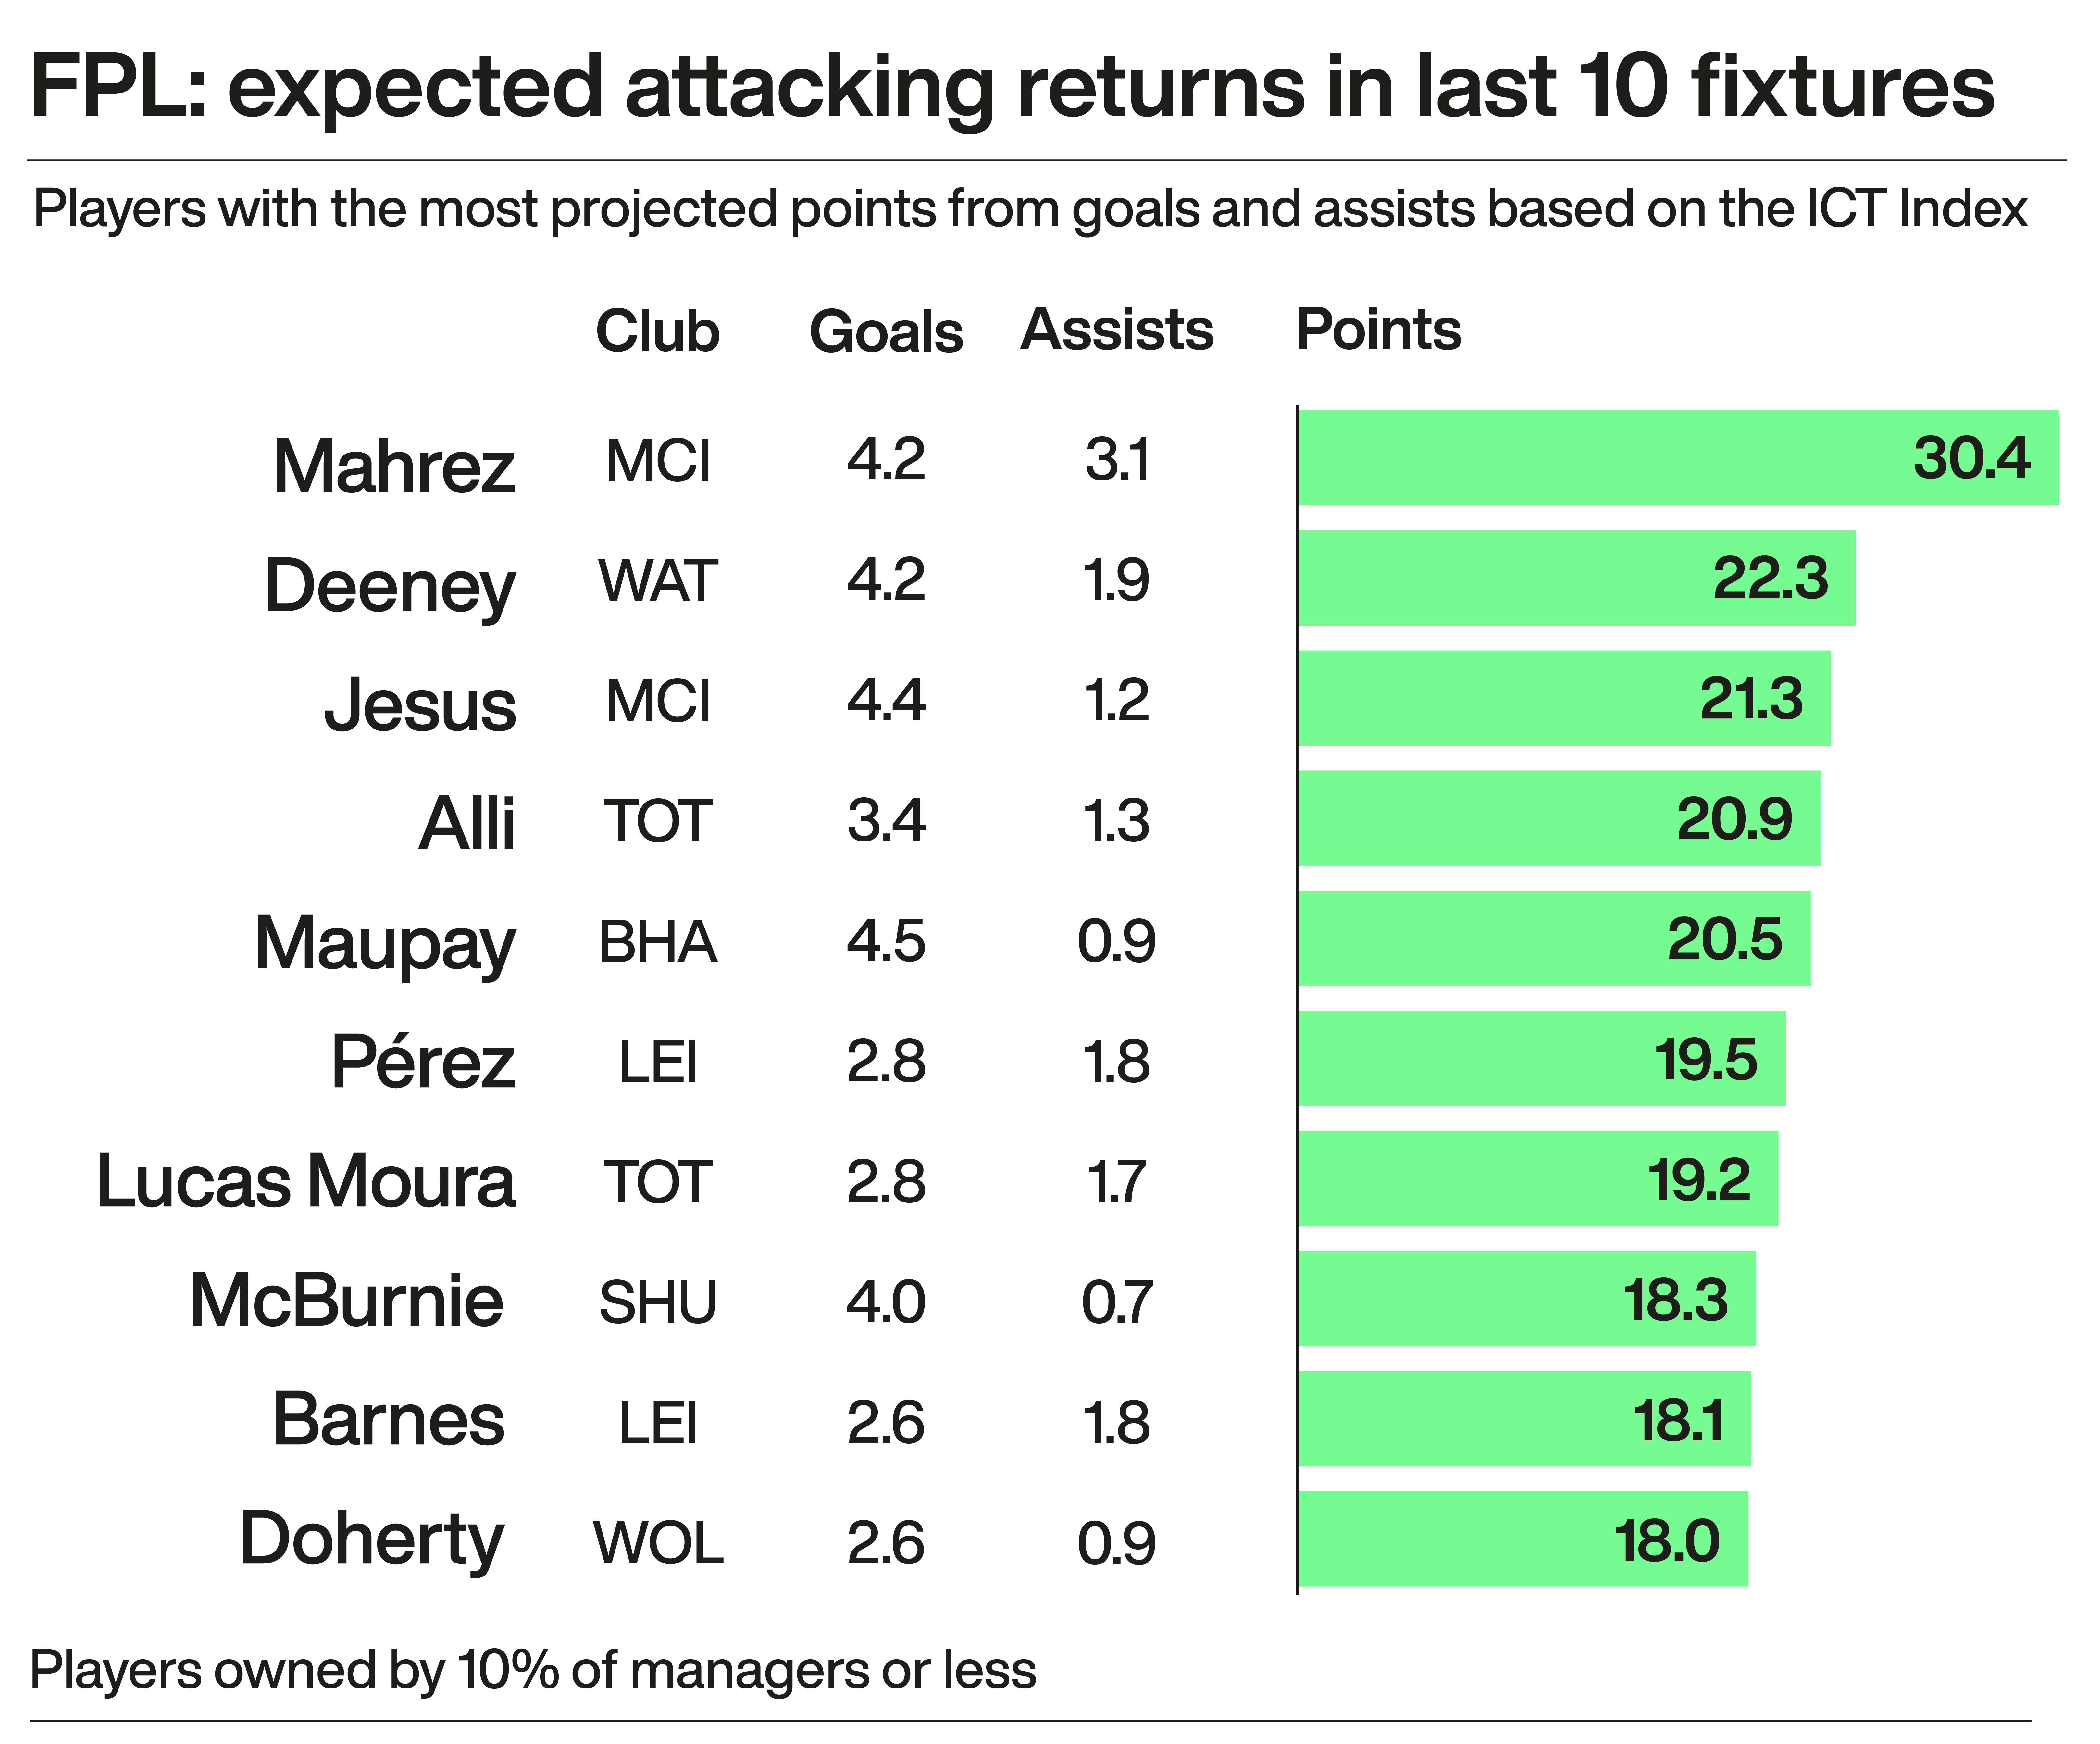 A graphic showing the number of FPL points players could expect to have scored based on attacking performance in their last 10 fixtures